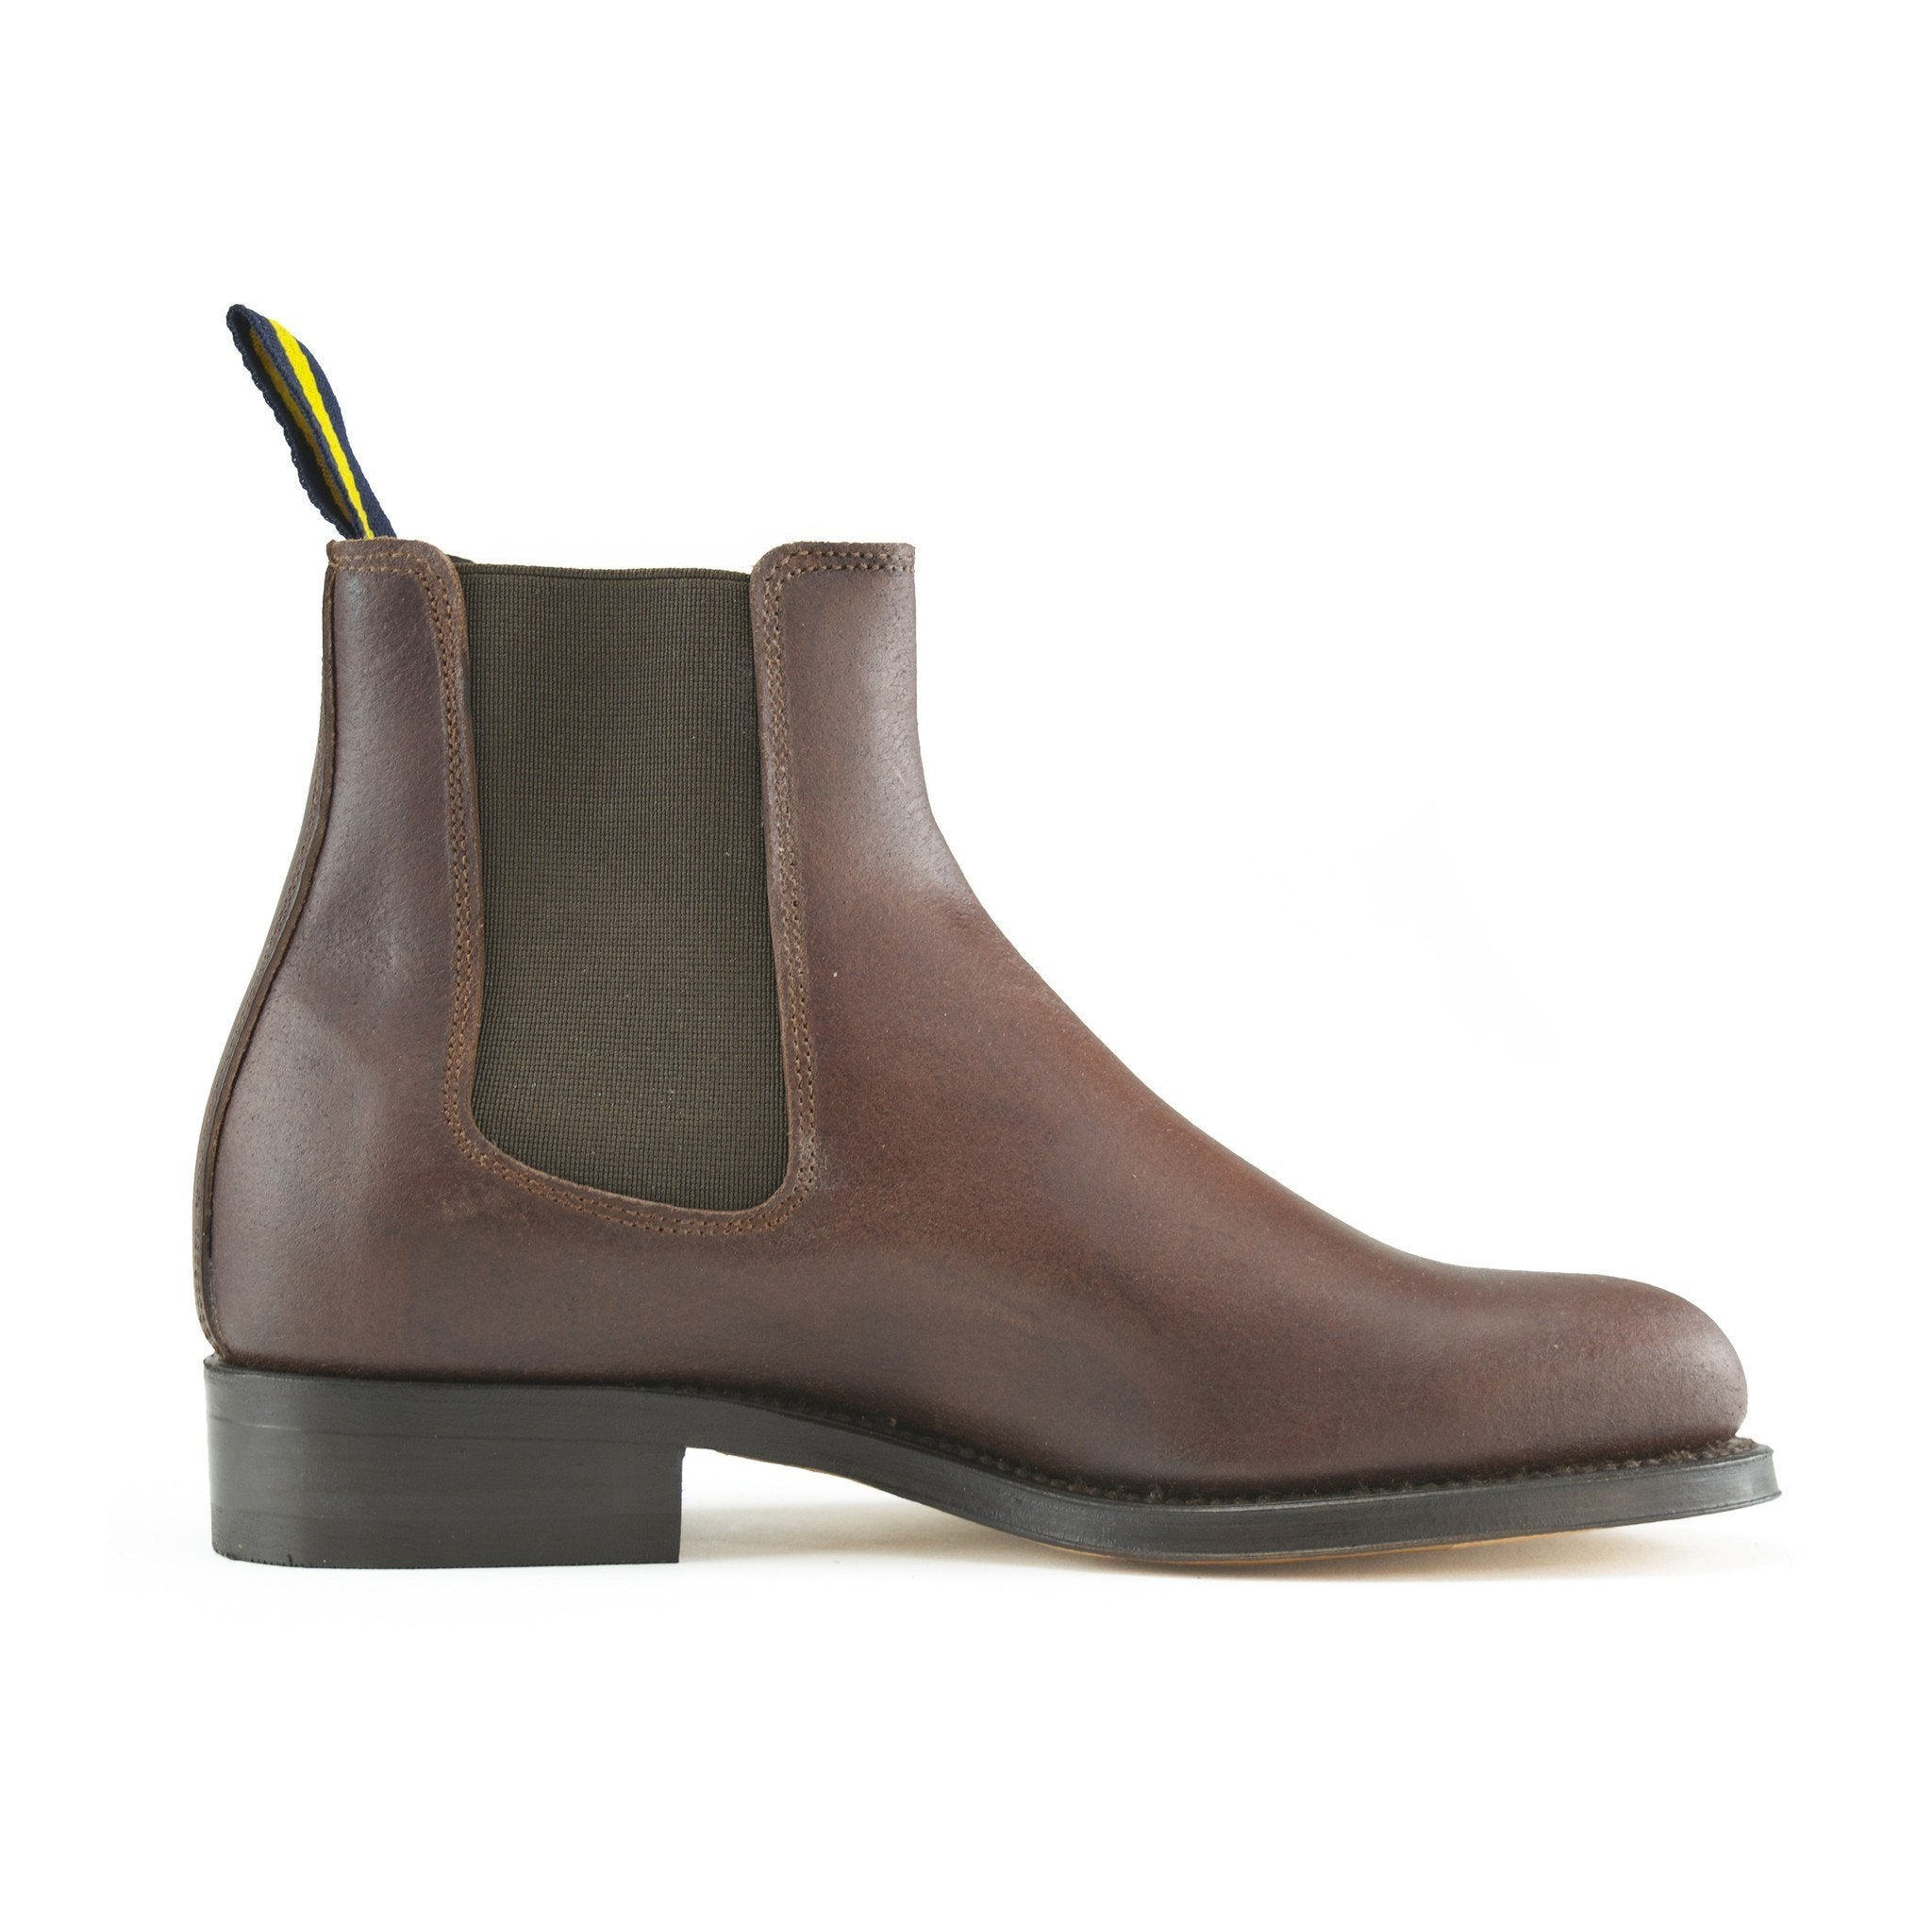 Dukes Boots Lola Boot for Ladies in Marron